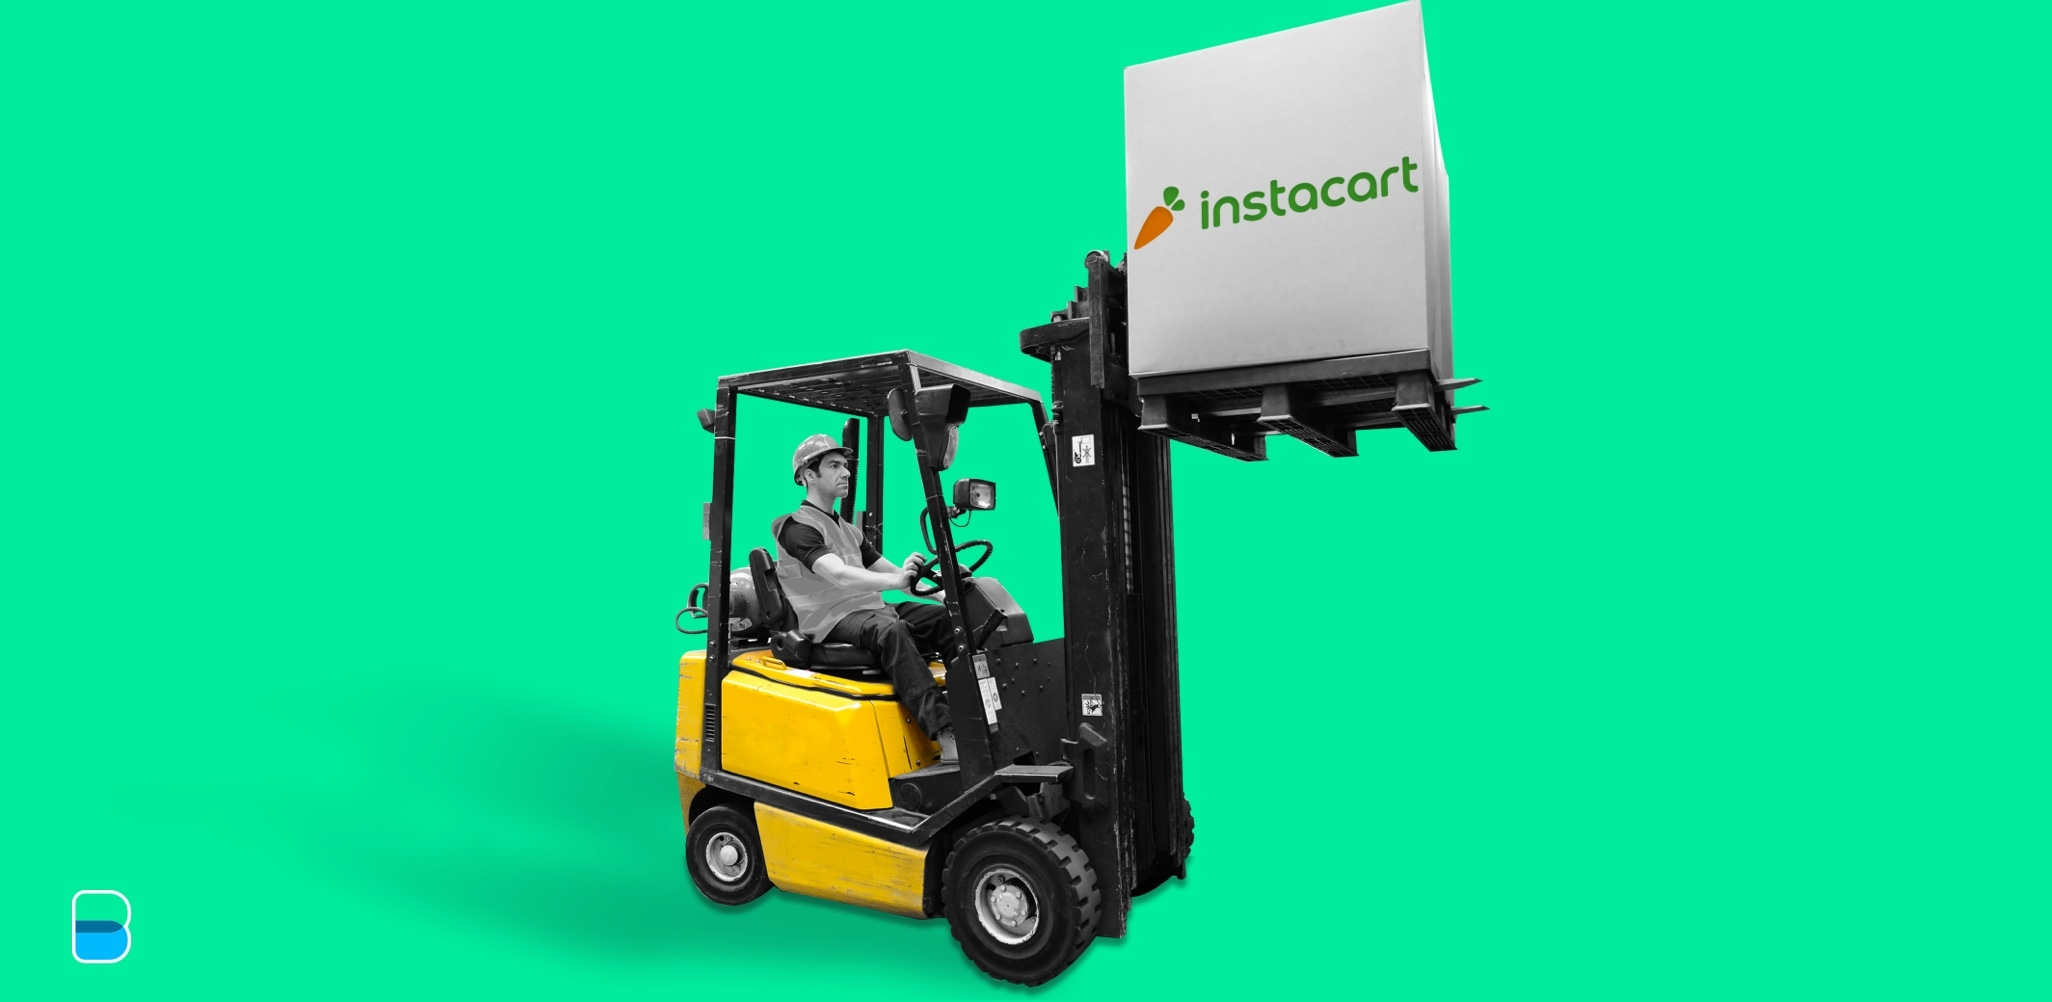 Instacart takes a page out of Amazon's playbook